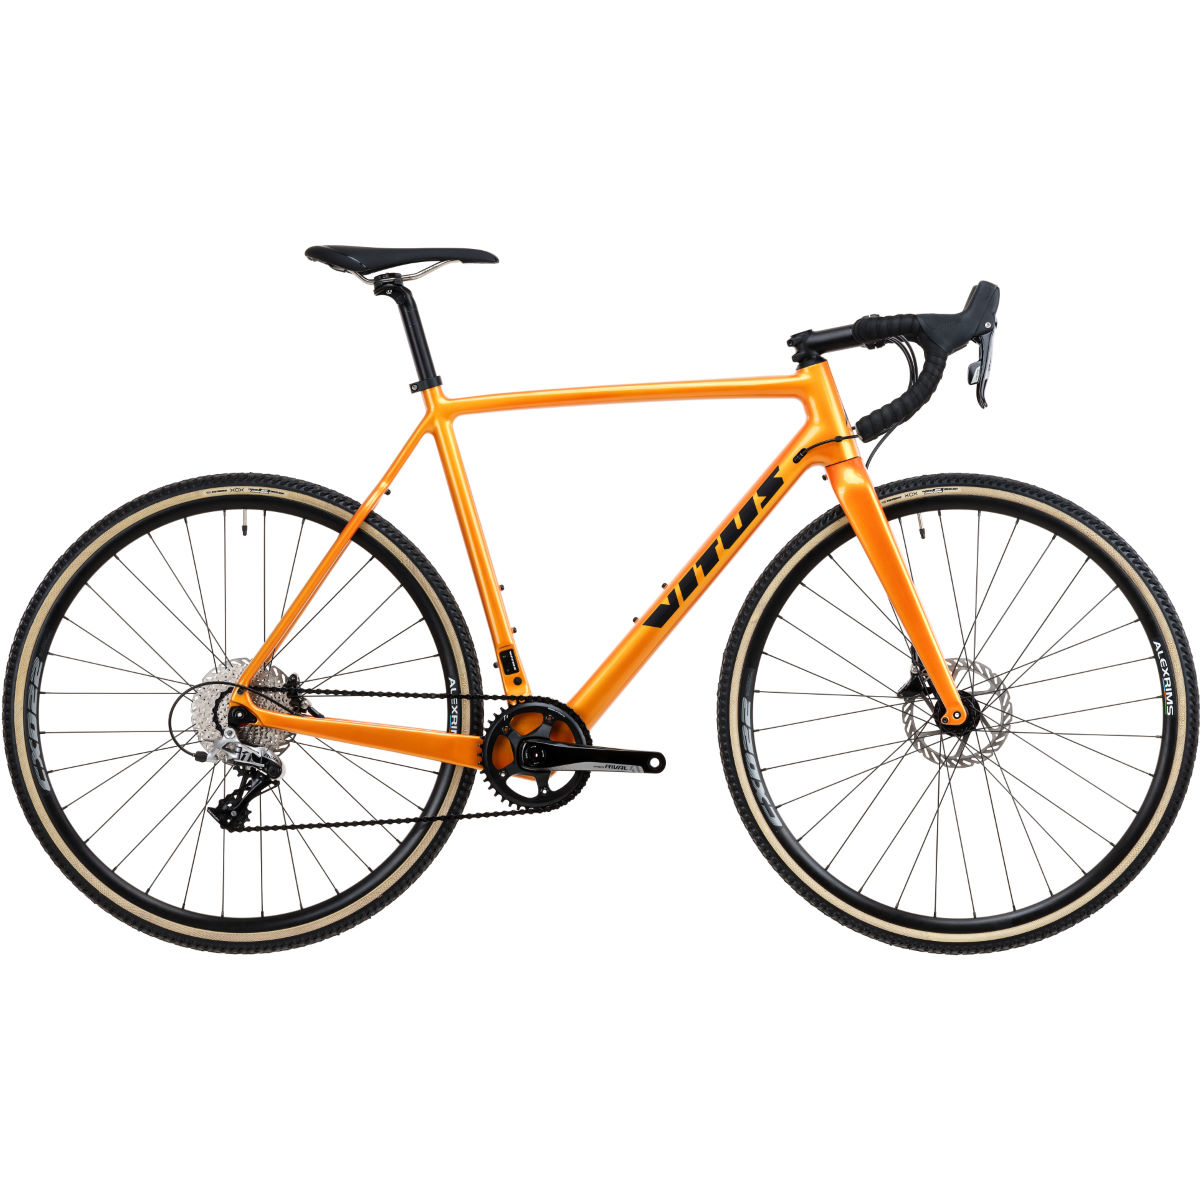 Image of Vélo de cyclo-cross Vitus Energie CR (Rival, 2020) - Large